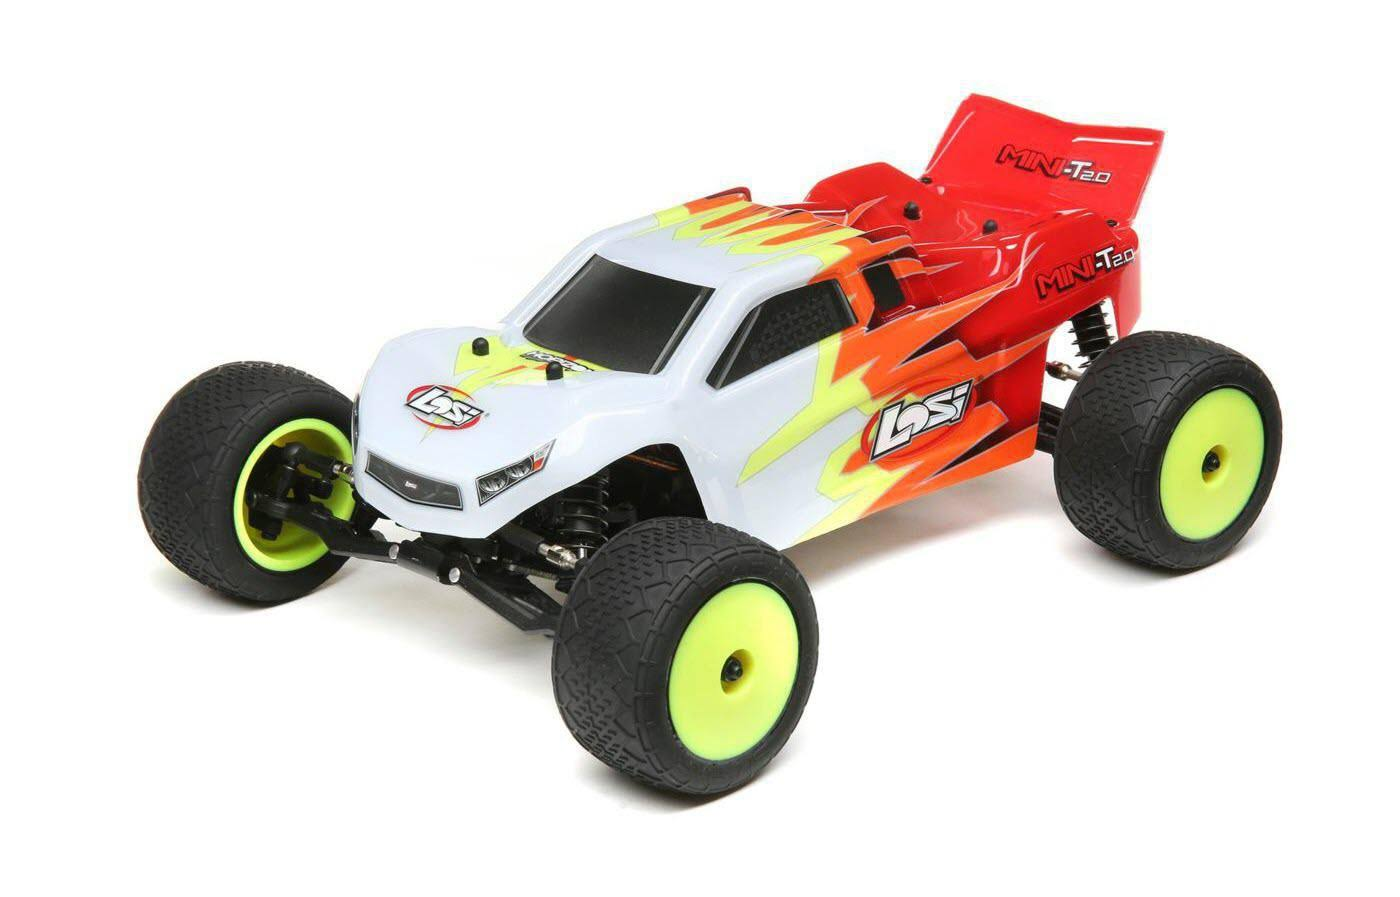 Losi 1/18 Mini-T 2.0 2WD Stadium Truck RTR, Red/White, LOS01015T1